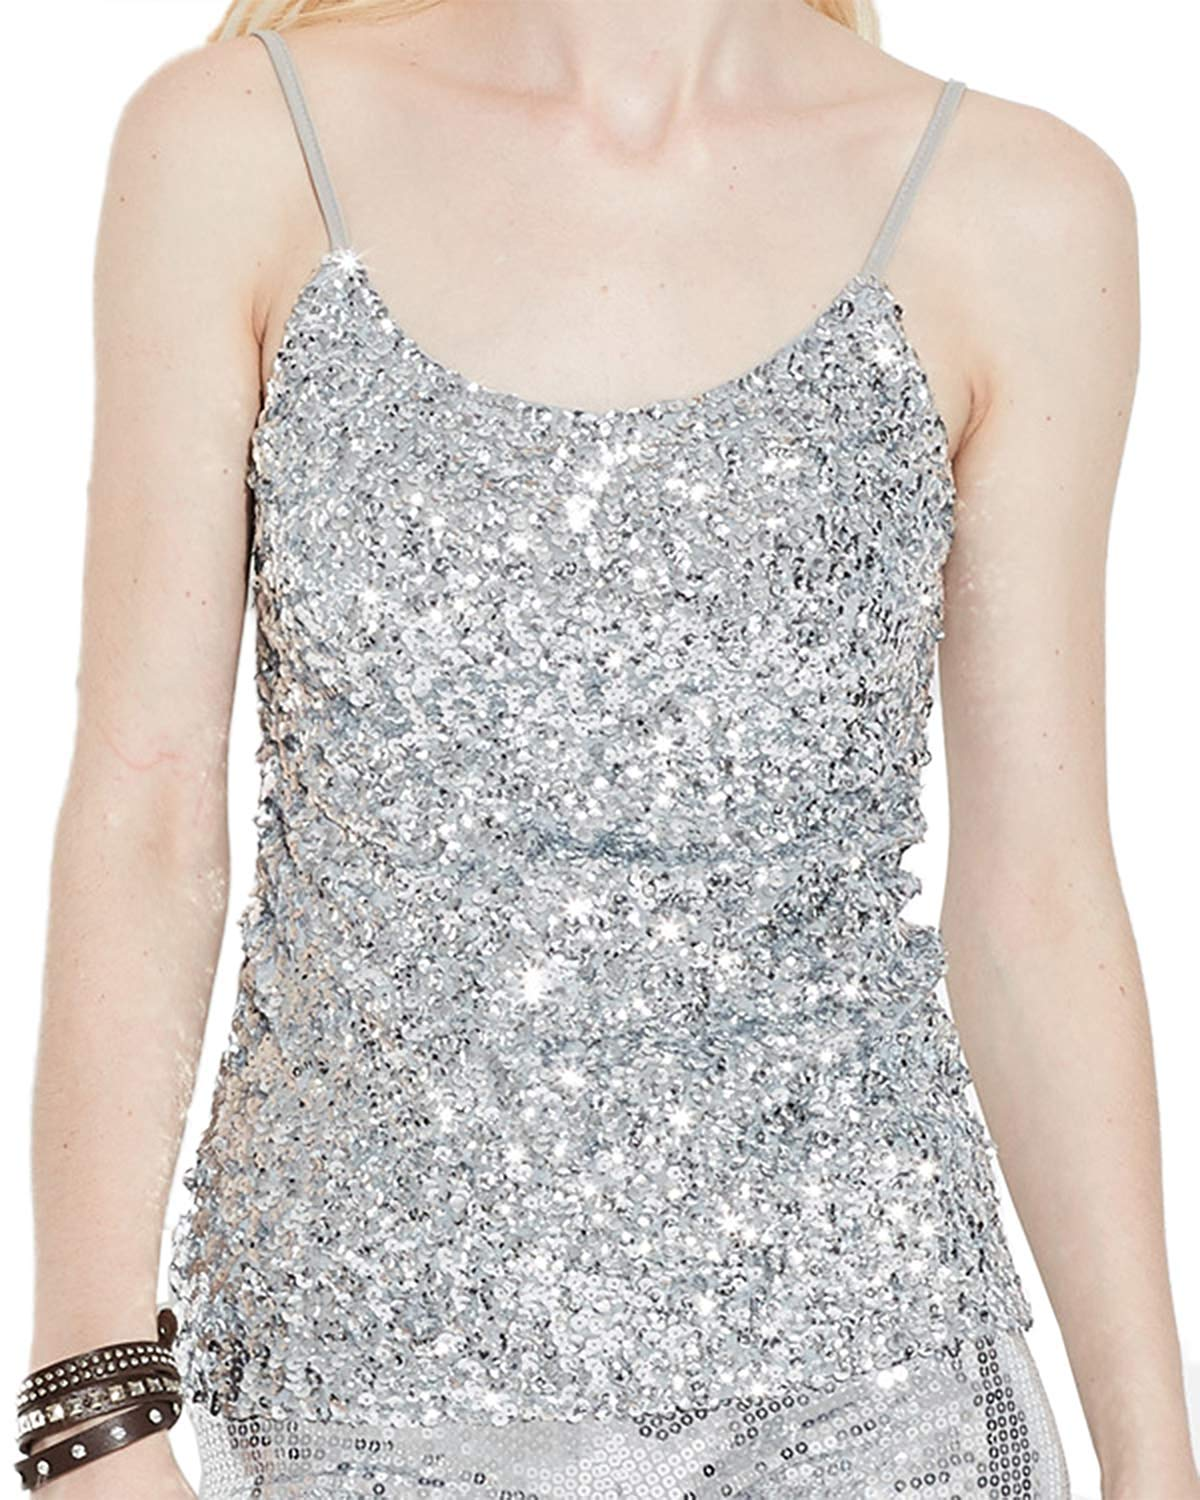 5f97163cefd2e Get Quotations · Anlydia Womens Sparkly Sequin Spaghetti Strap Party  Clubwear Tank Tops Shirt